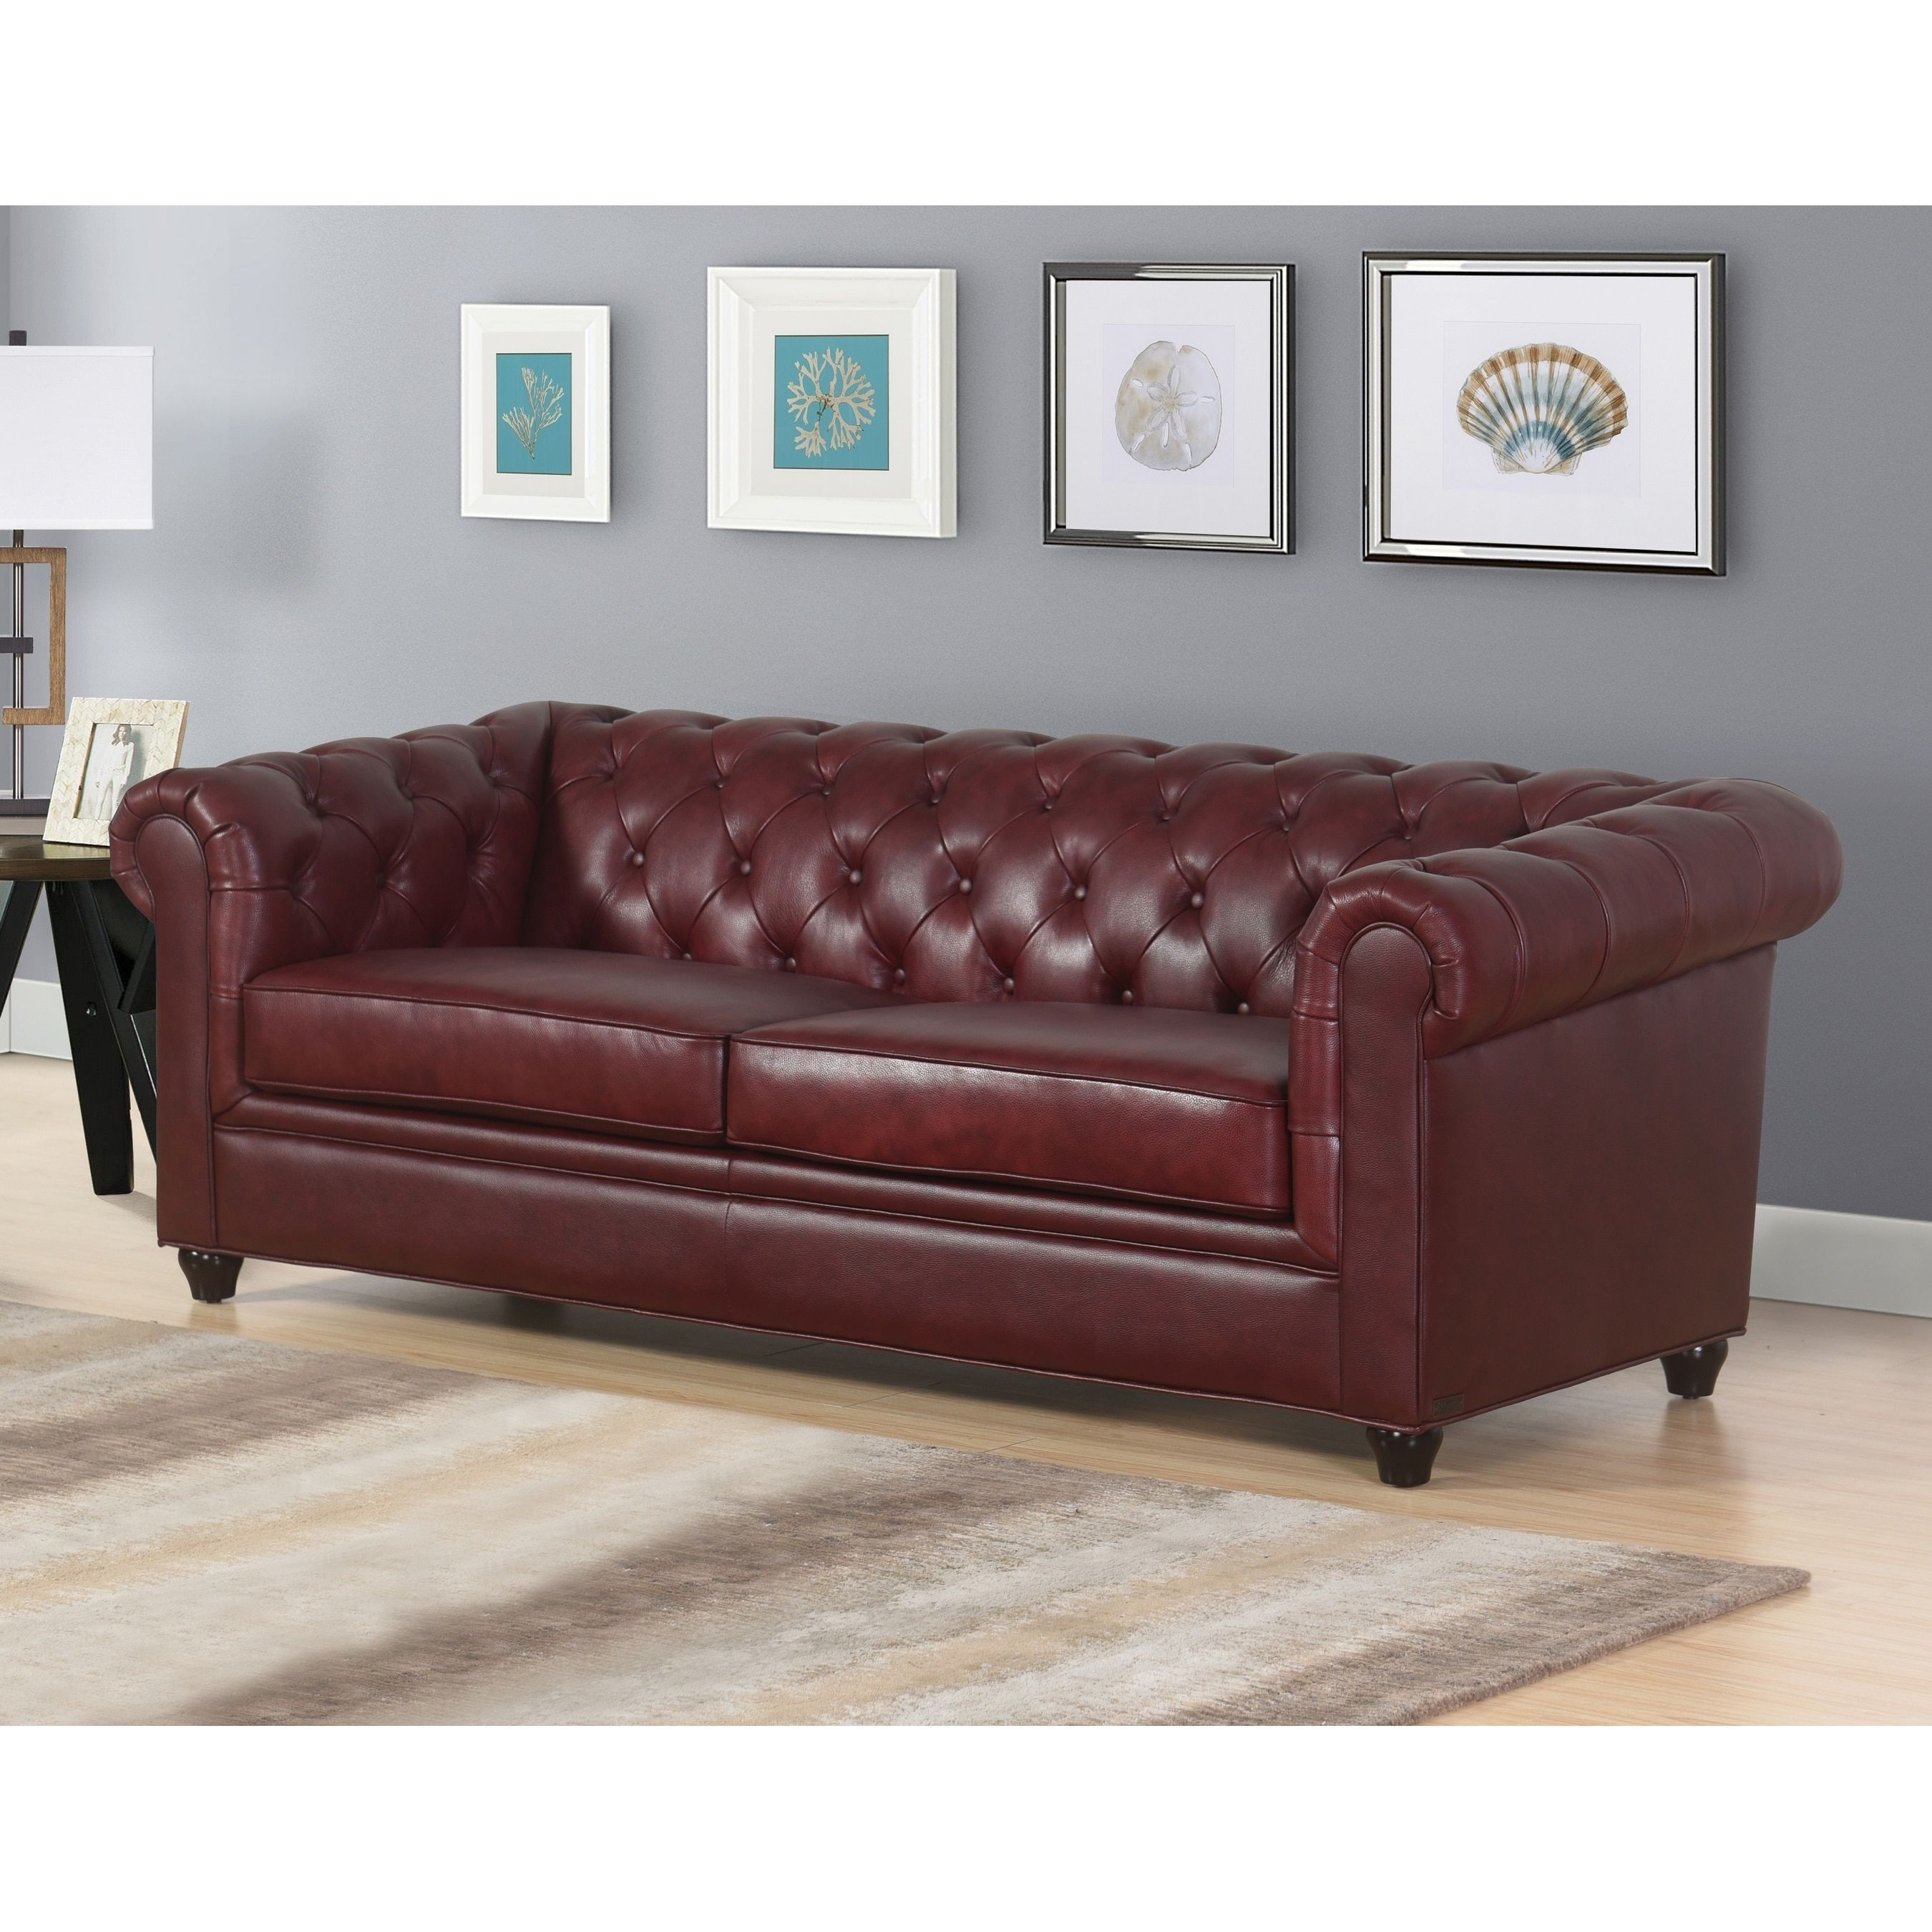 Abbyson Tuscan Top Grain Leather Chesterfield Sofa Burgundy Red